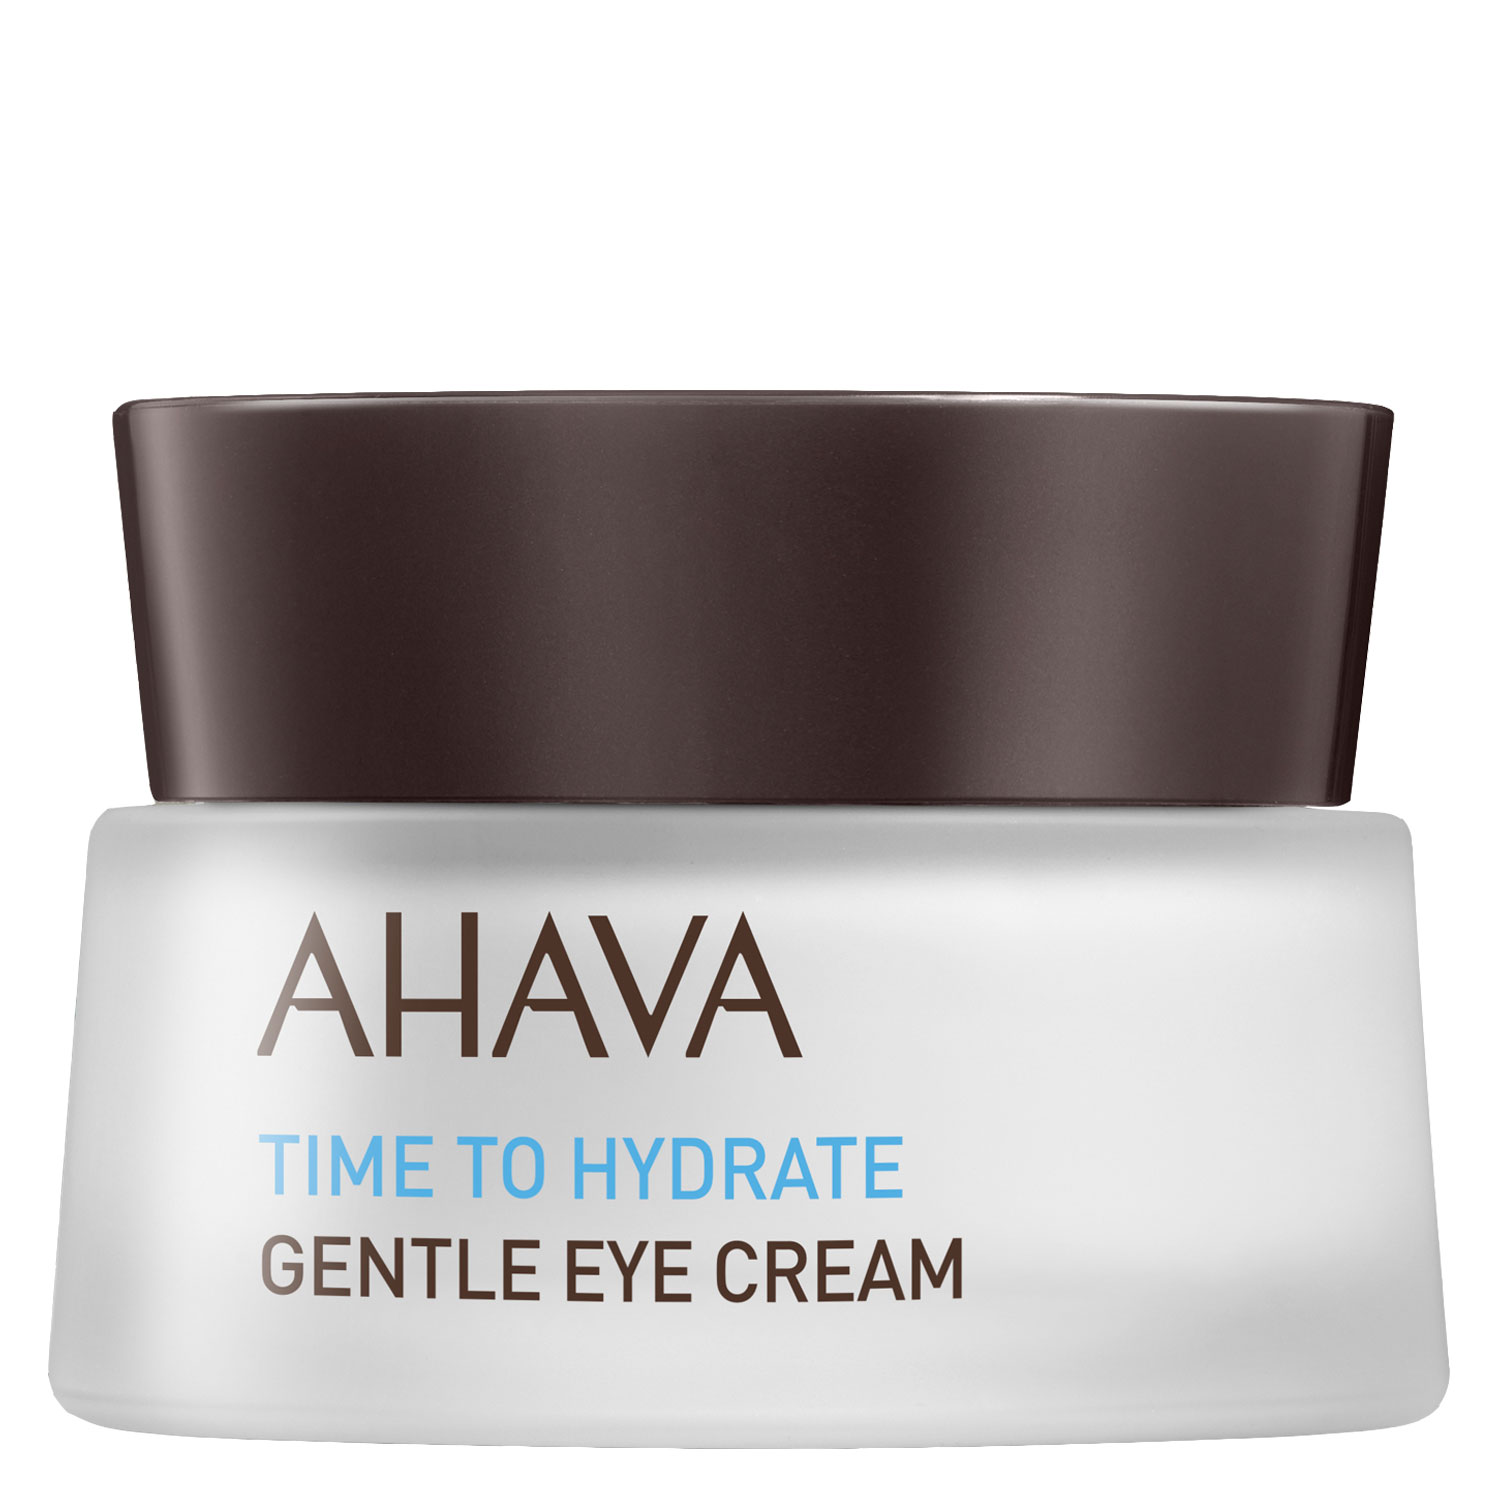 Time To Hydrate - Gentle Eye Cream